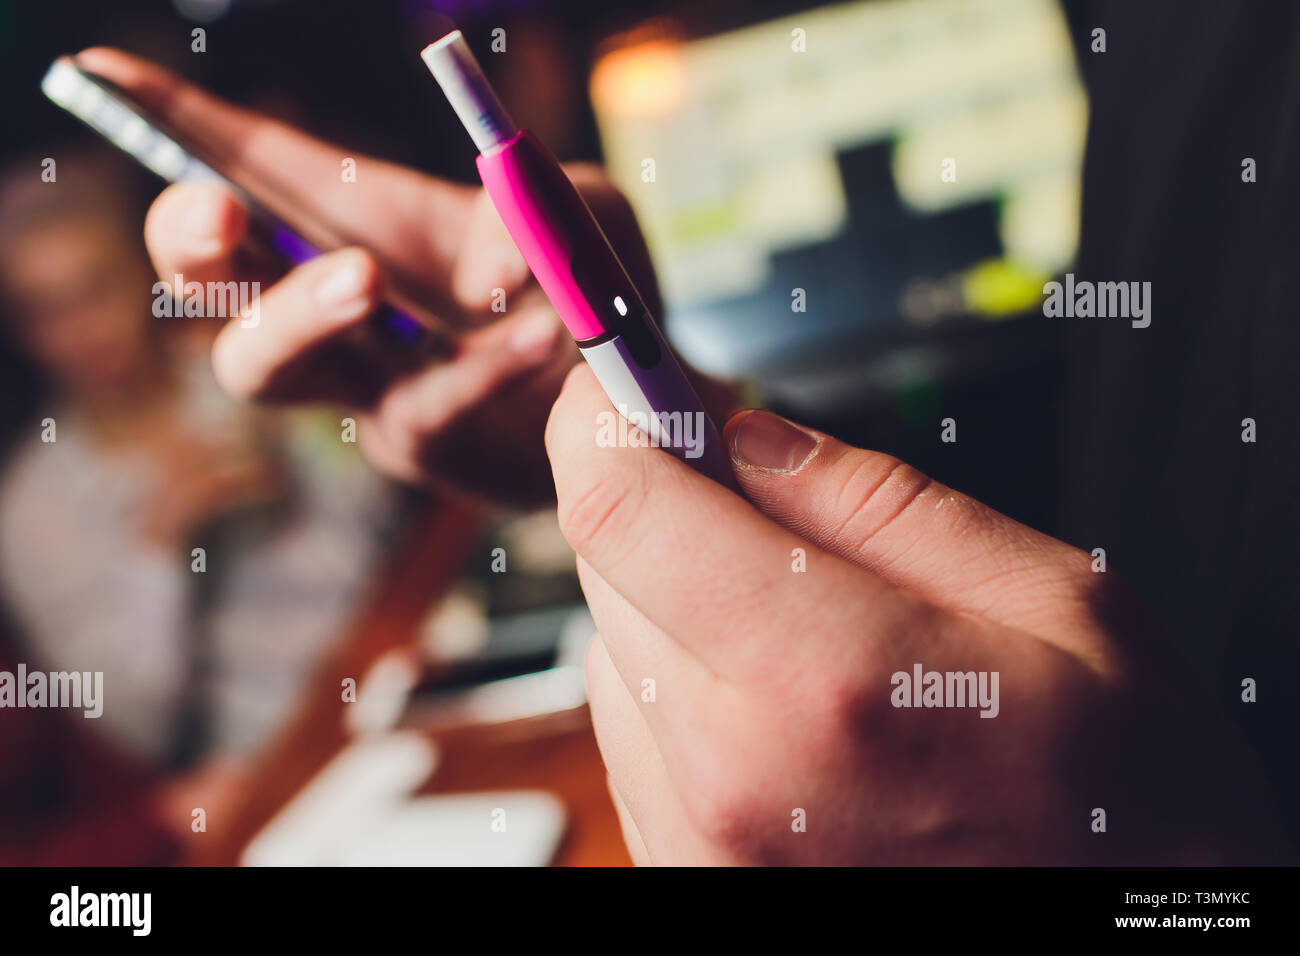 IQOS heat-not-burn tobacco product technology. Woman holding e-cigarette in his hand before smoking - Stock Image